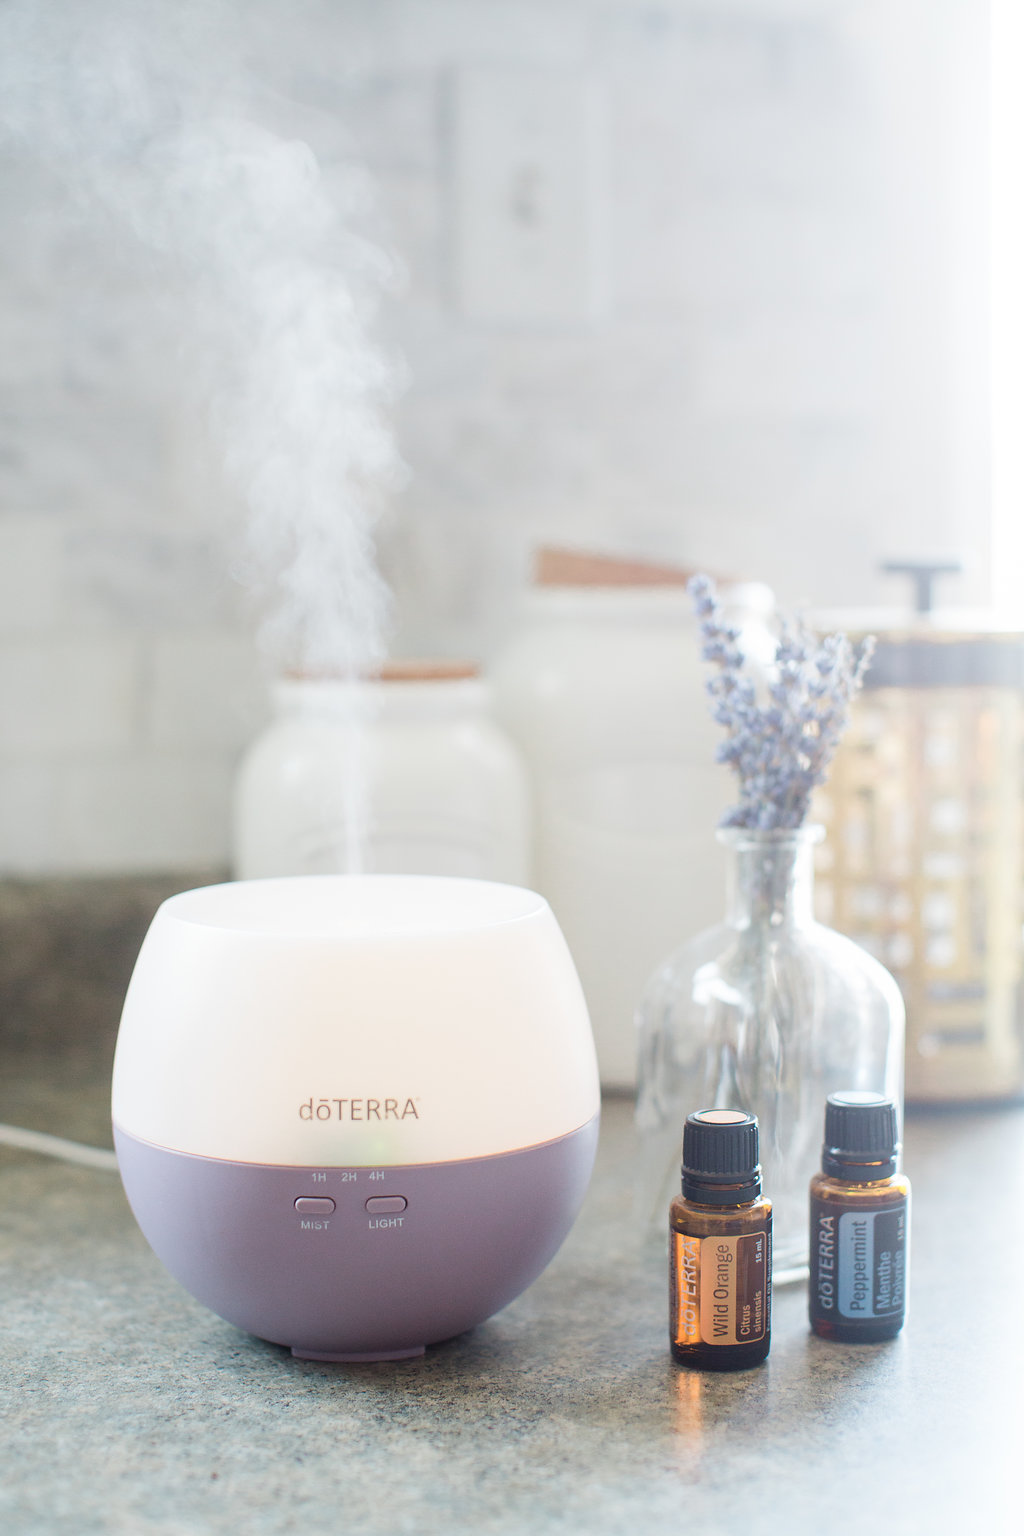 essential oils, DoTerra oils, healthy living, clean living, social project, community, support local, barrie, barrie social media, social media,